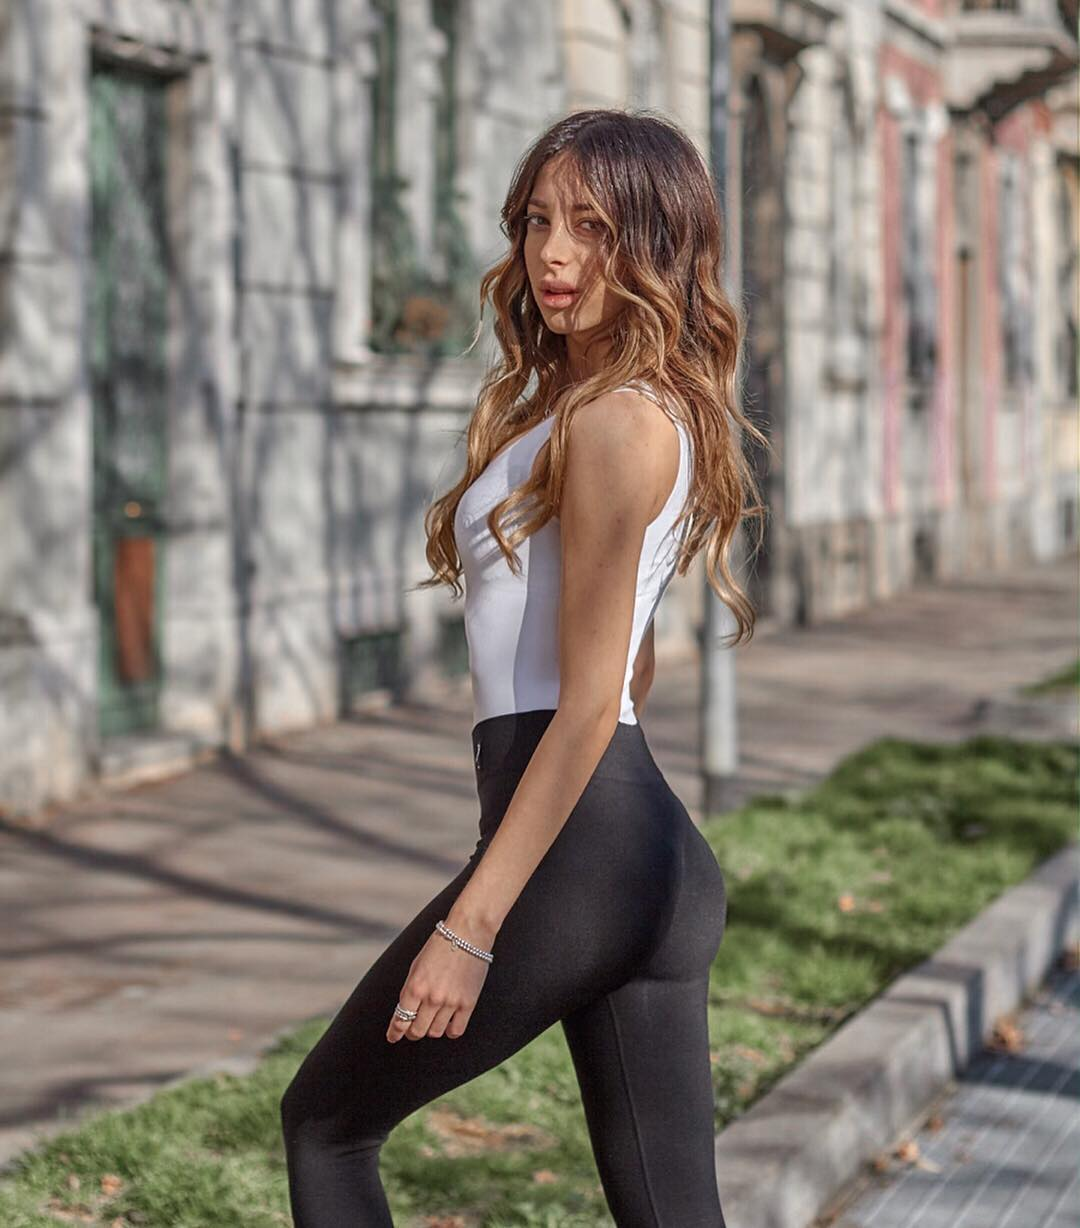 Elena-Nicol-Pasqualotti-Wallpapers-Insta-Fit-Bio-17